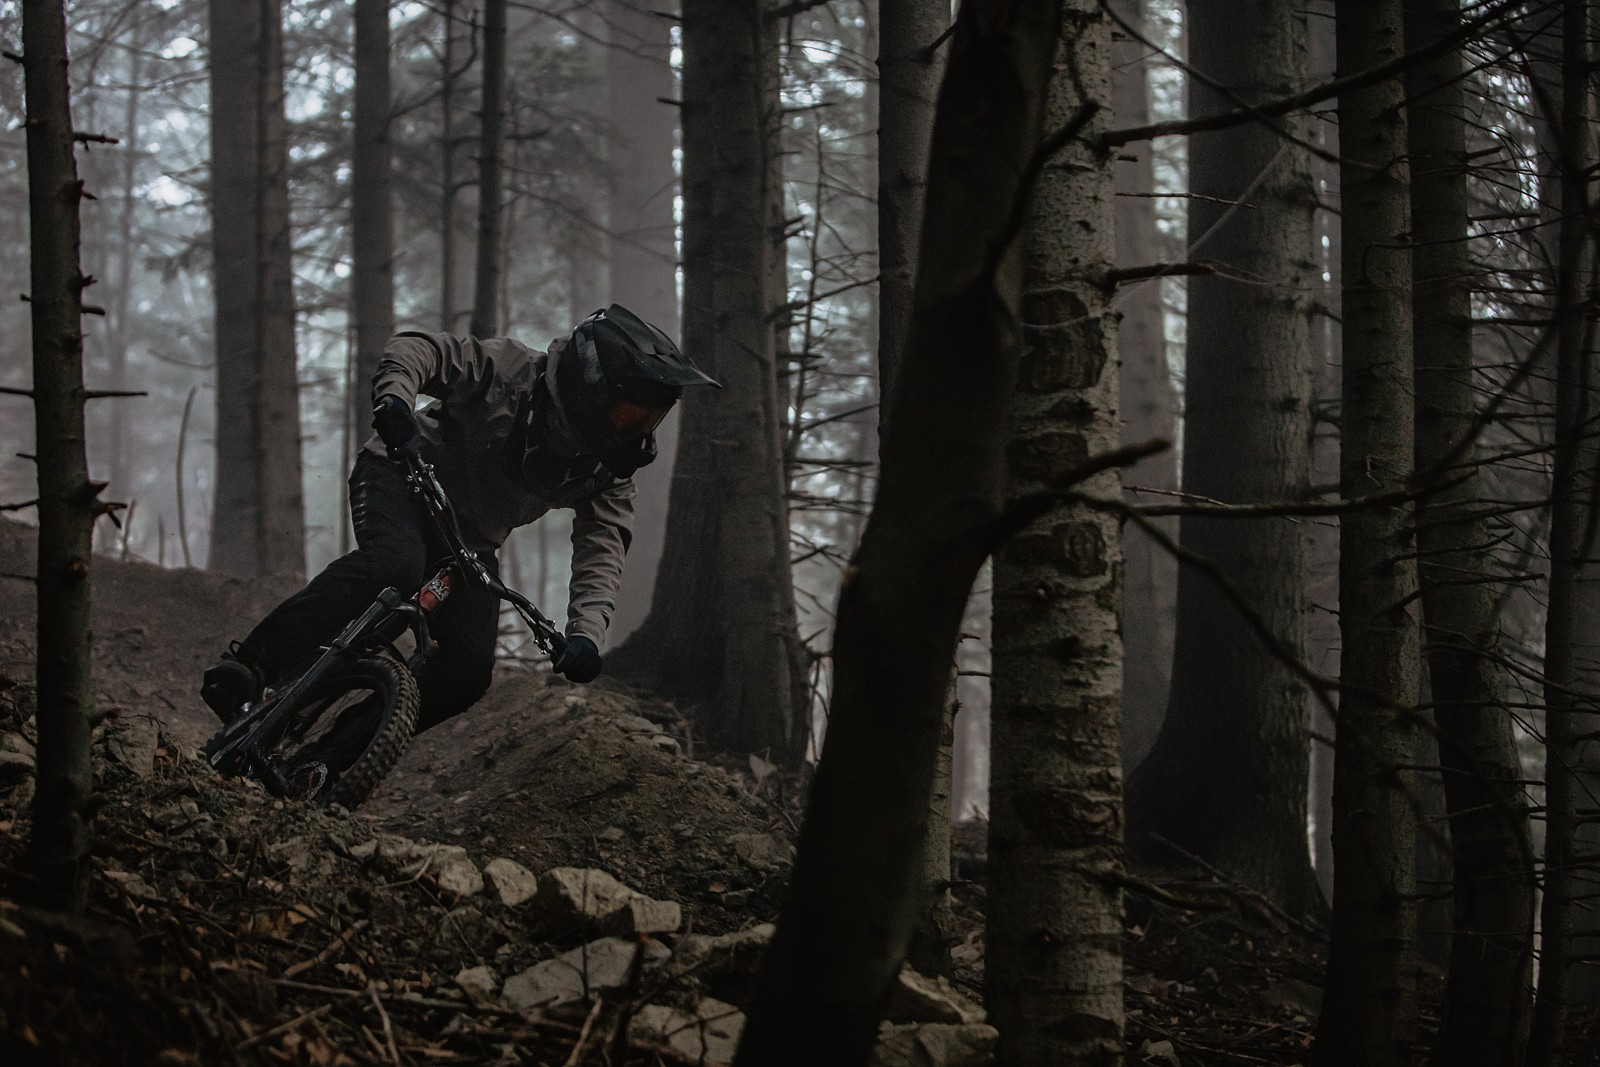 Dark misty spot on the other side of a gully - Banan - Mountain Biking Pictures - Vital MTB